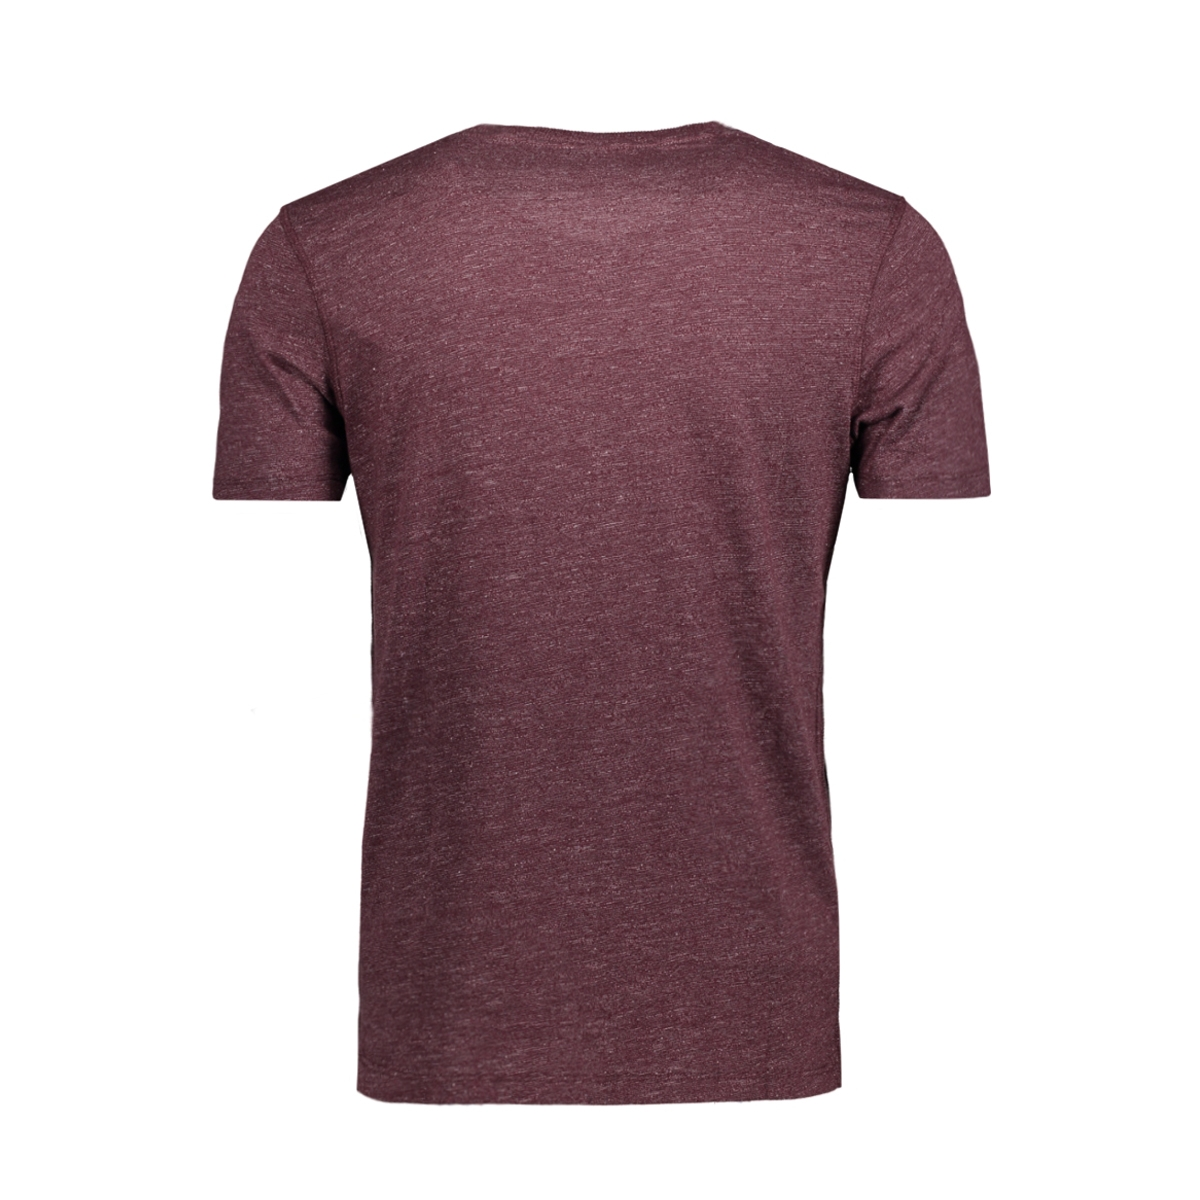 jorauthentic tee ss crew neck 12128508 jack & jones t-shirt sassafras